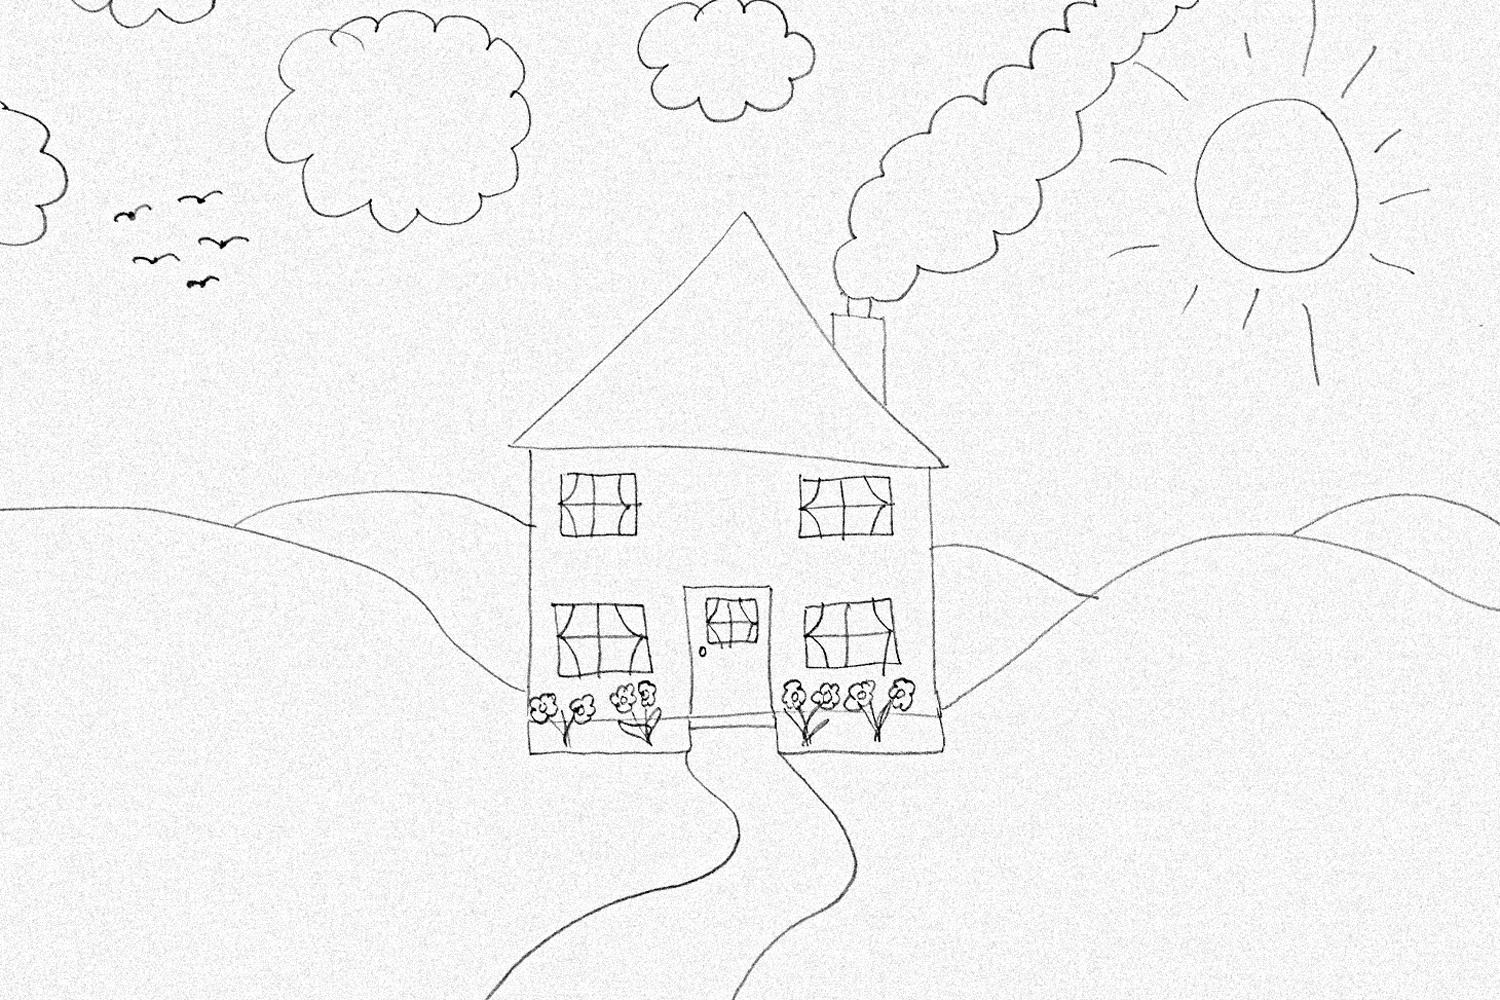 Childs Drawing of a house